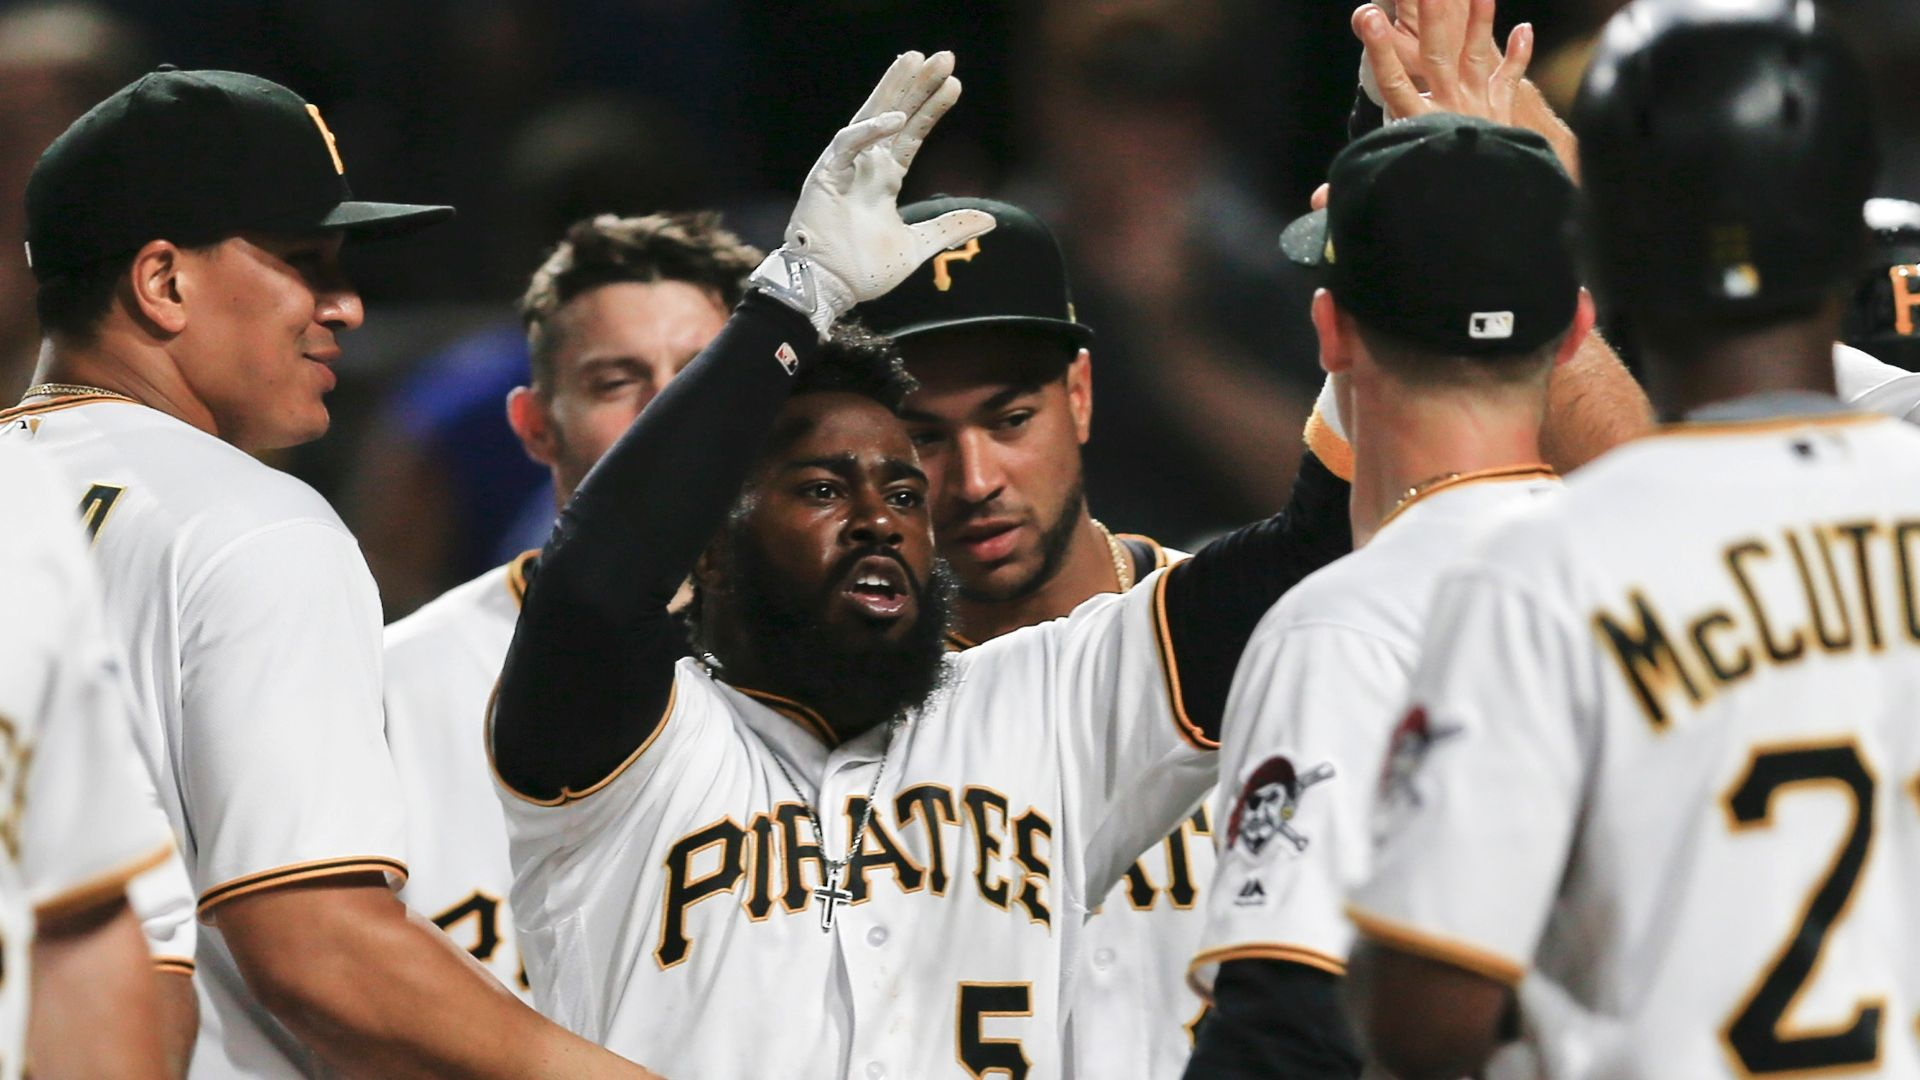 Hill's no-hit bid spoiled by walk-off 10th